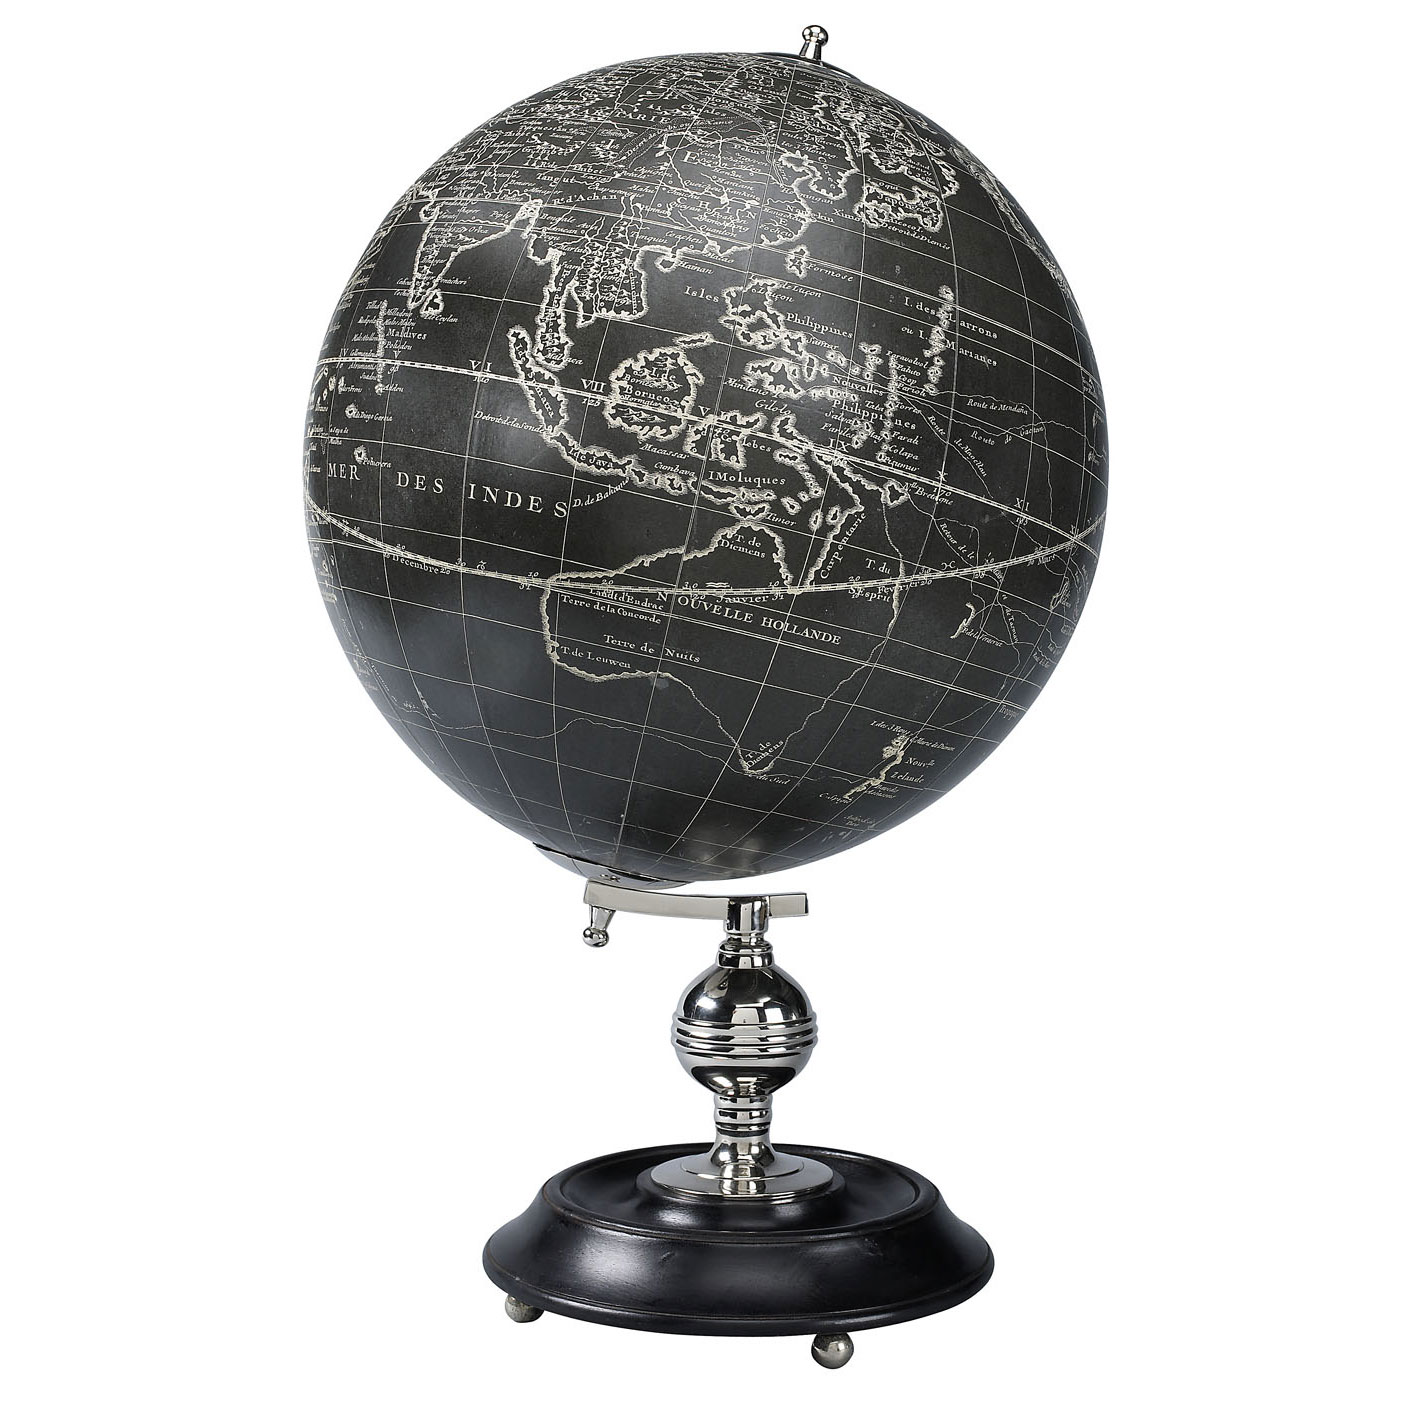 globe terrestre antique vaugondy noir reproduction. Black Bedroom Furniture Sets. Home Design Ideas